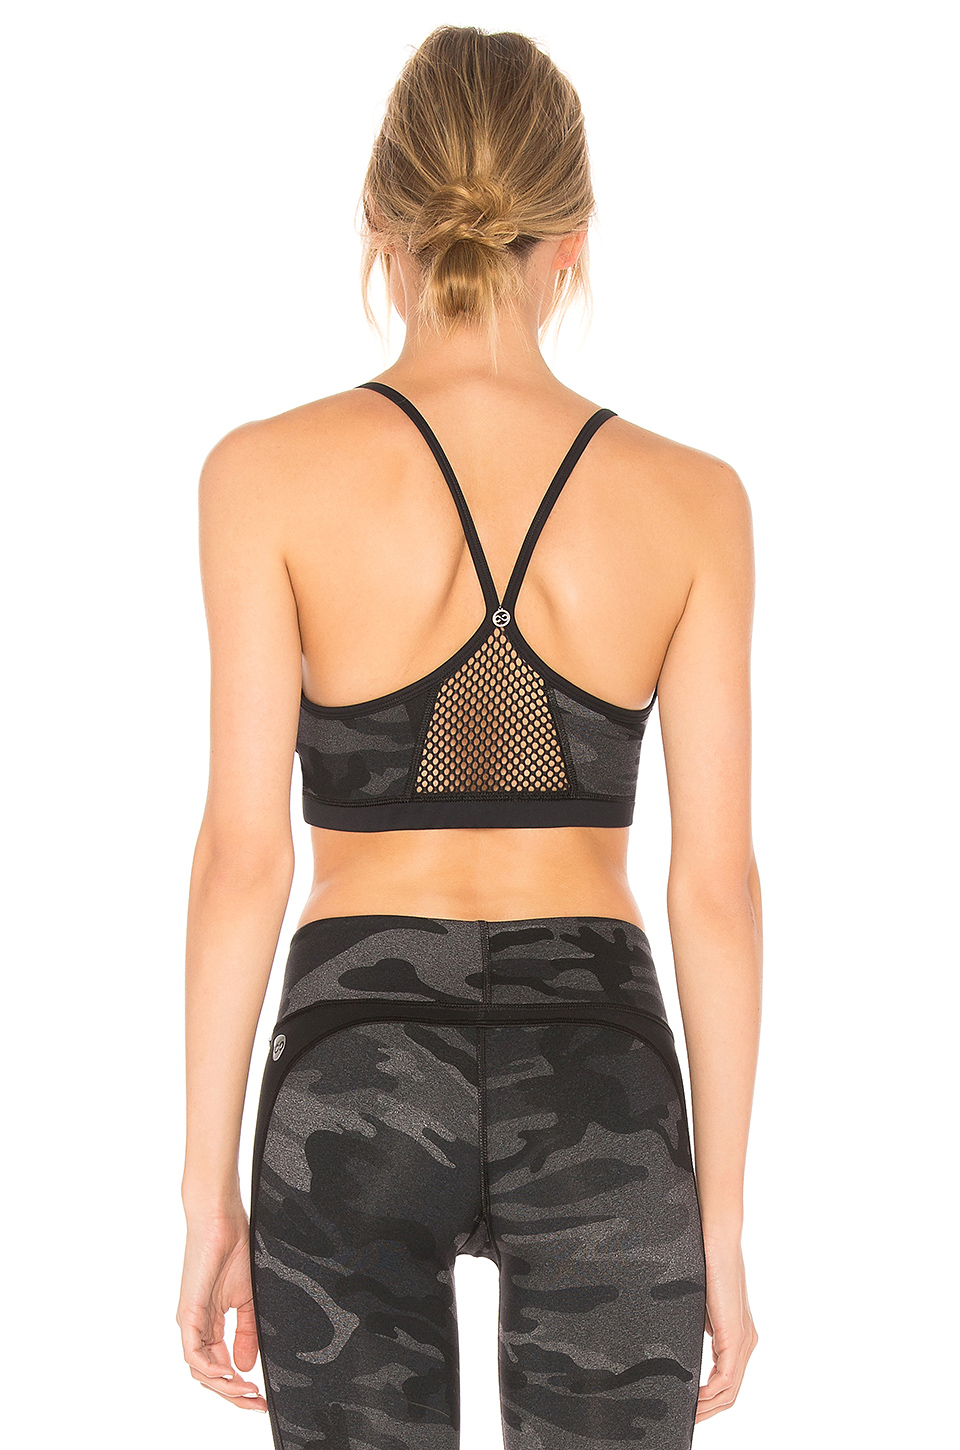 CHICHI Halle Camo Sports Bra in Charcoal